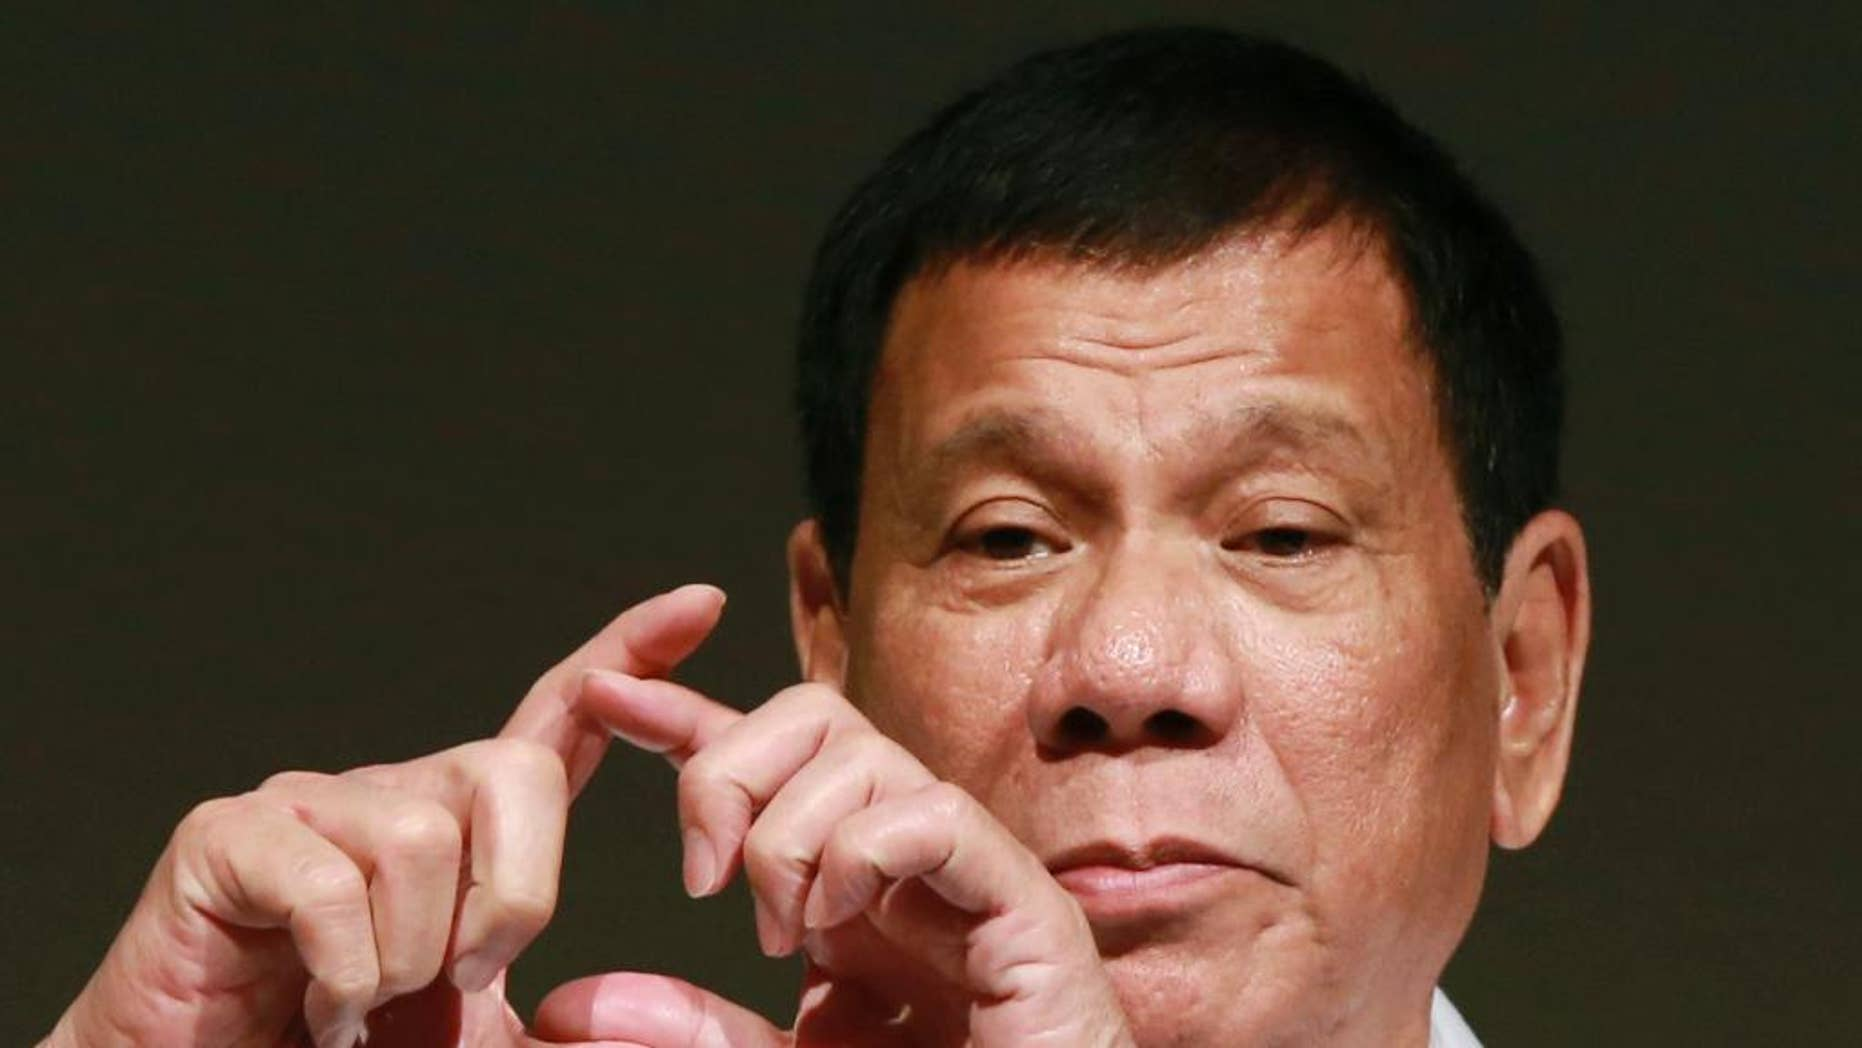 """FILE - In this Oct. 26, 2016, file photo, Philippine President Rodrigo Duterte delivers a speech at the Philippine Economic Forum in Tokyo. Duterte telephoned U.S. President-elect Donald Trump late Friday, Dec. 2 and had a brief but """"very engaging, animated conversation"""" in which both leaders invited each other to visit his country.  In a video released by Duterte's close aide, Bong Go, the Philippine leader is seen smiling while talking to Trump late Friday and saying: """"We will maintain ... and enhance the bilateral ties between our two countries.""""  (AP Photo/Eugene Hoshiko, File)"""